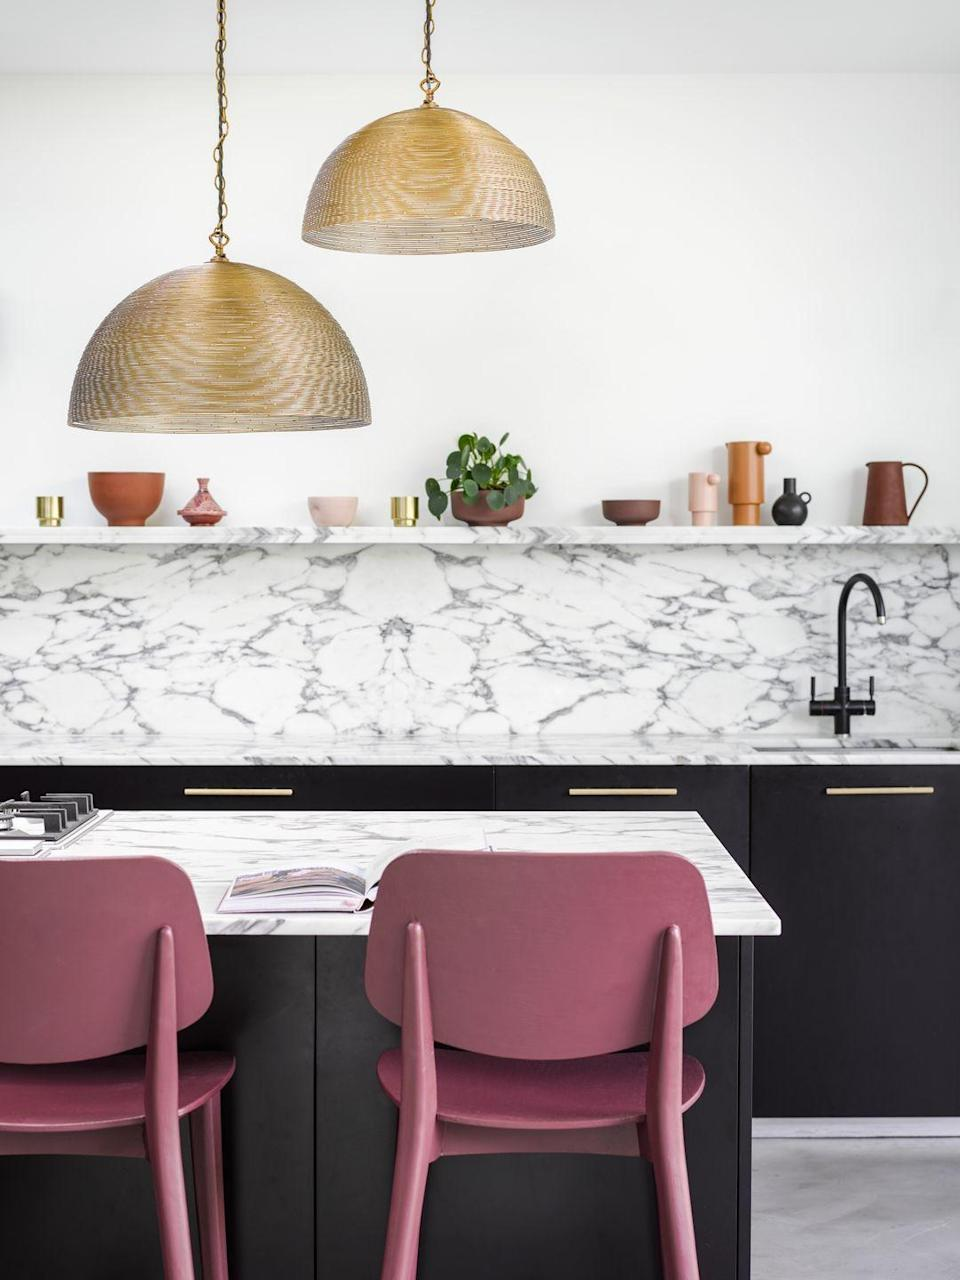 """<p>'Islands play an essential part in functional kitchens providing a handy area to prepare food, store extra equipment or even sit and eat,' explains Naomi.</p><p>'By including an island or breakfast bar in the kitchen design also helps to create a partition between kitchen and living space. This will help define areas of the room without closing in the kitchen or blocking off the rest of the room.'</p><p>• Large spangle pendant from <a href=""""https://go.redirectingat.com?id=127X1599956&url=https%3A%2F%2Fwww.pooky.com%2F&sref=https%3A%2F%2Fwww.housebeautiful.com%2Fuk%2Fdecorate%2Fkitchen%2Fg36940747%2Fkitchen-island-ideas%2F"""" rel=""""nofollow noopener"""" target=""""_blank"""" data-ylk=""""slk:Pooky"""" class=""""link rapid-noclick-resp"""">Pooky</a> </p>"""